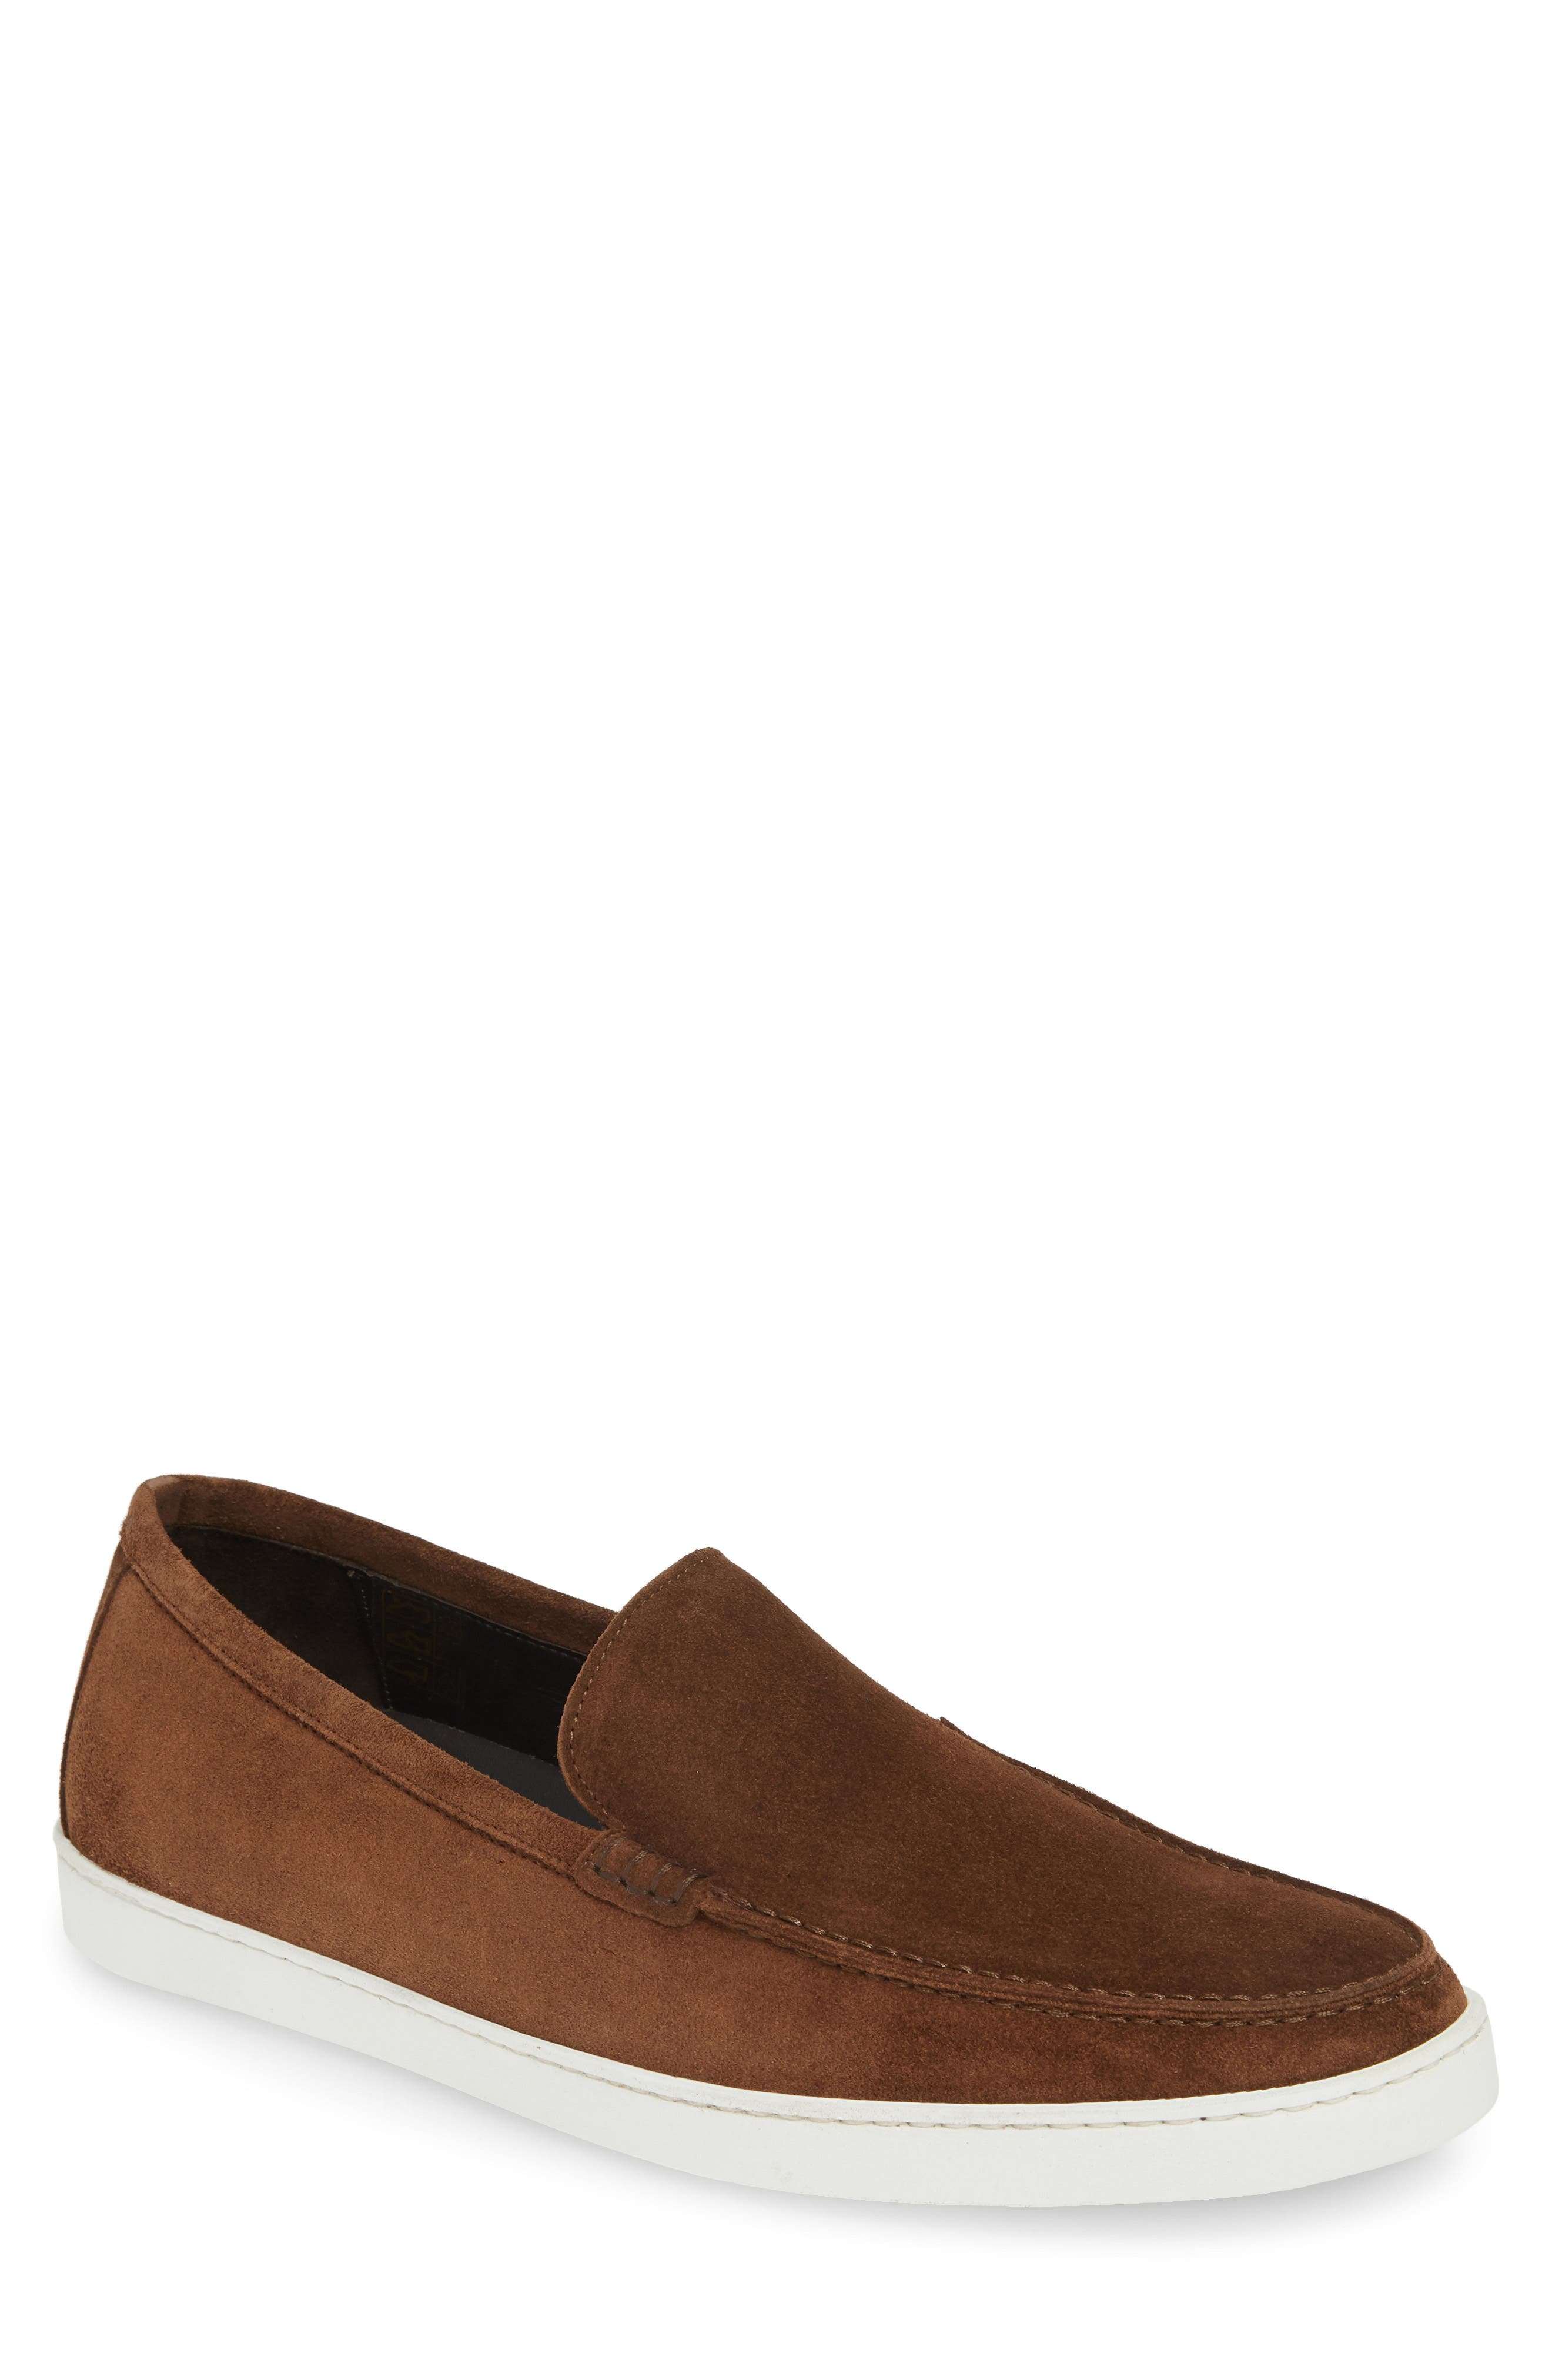 To Boot New York Jet Slip-On, Brown